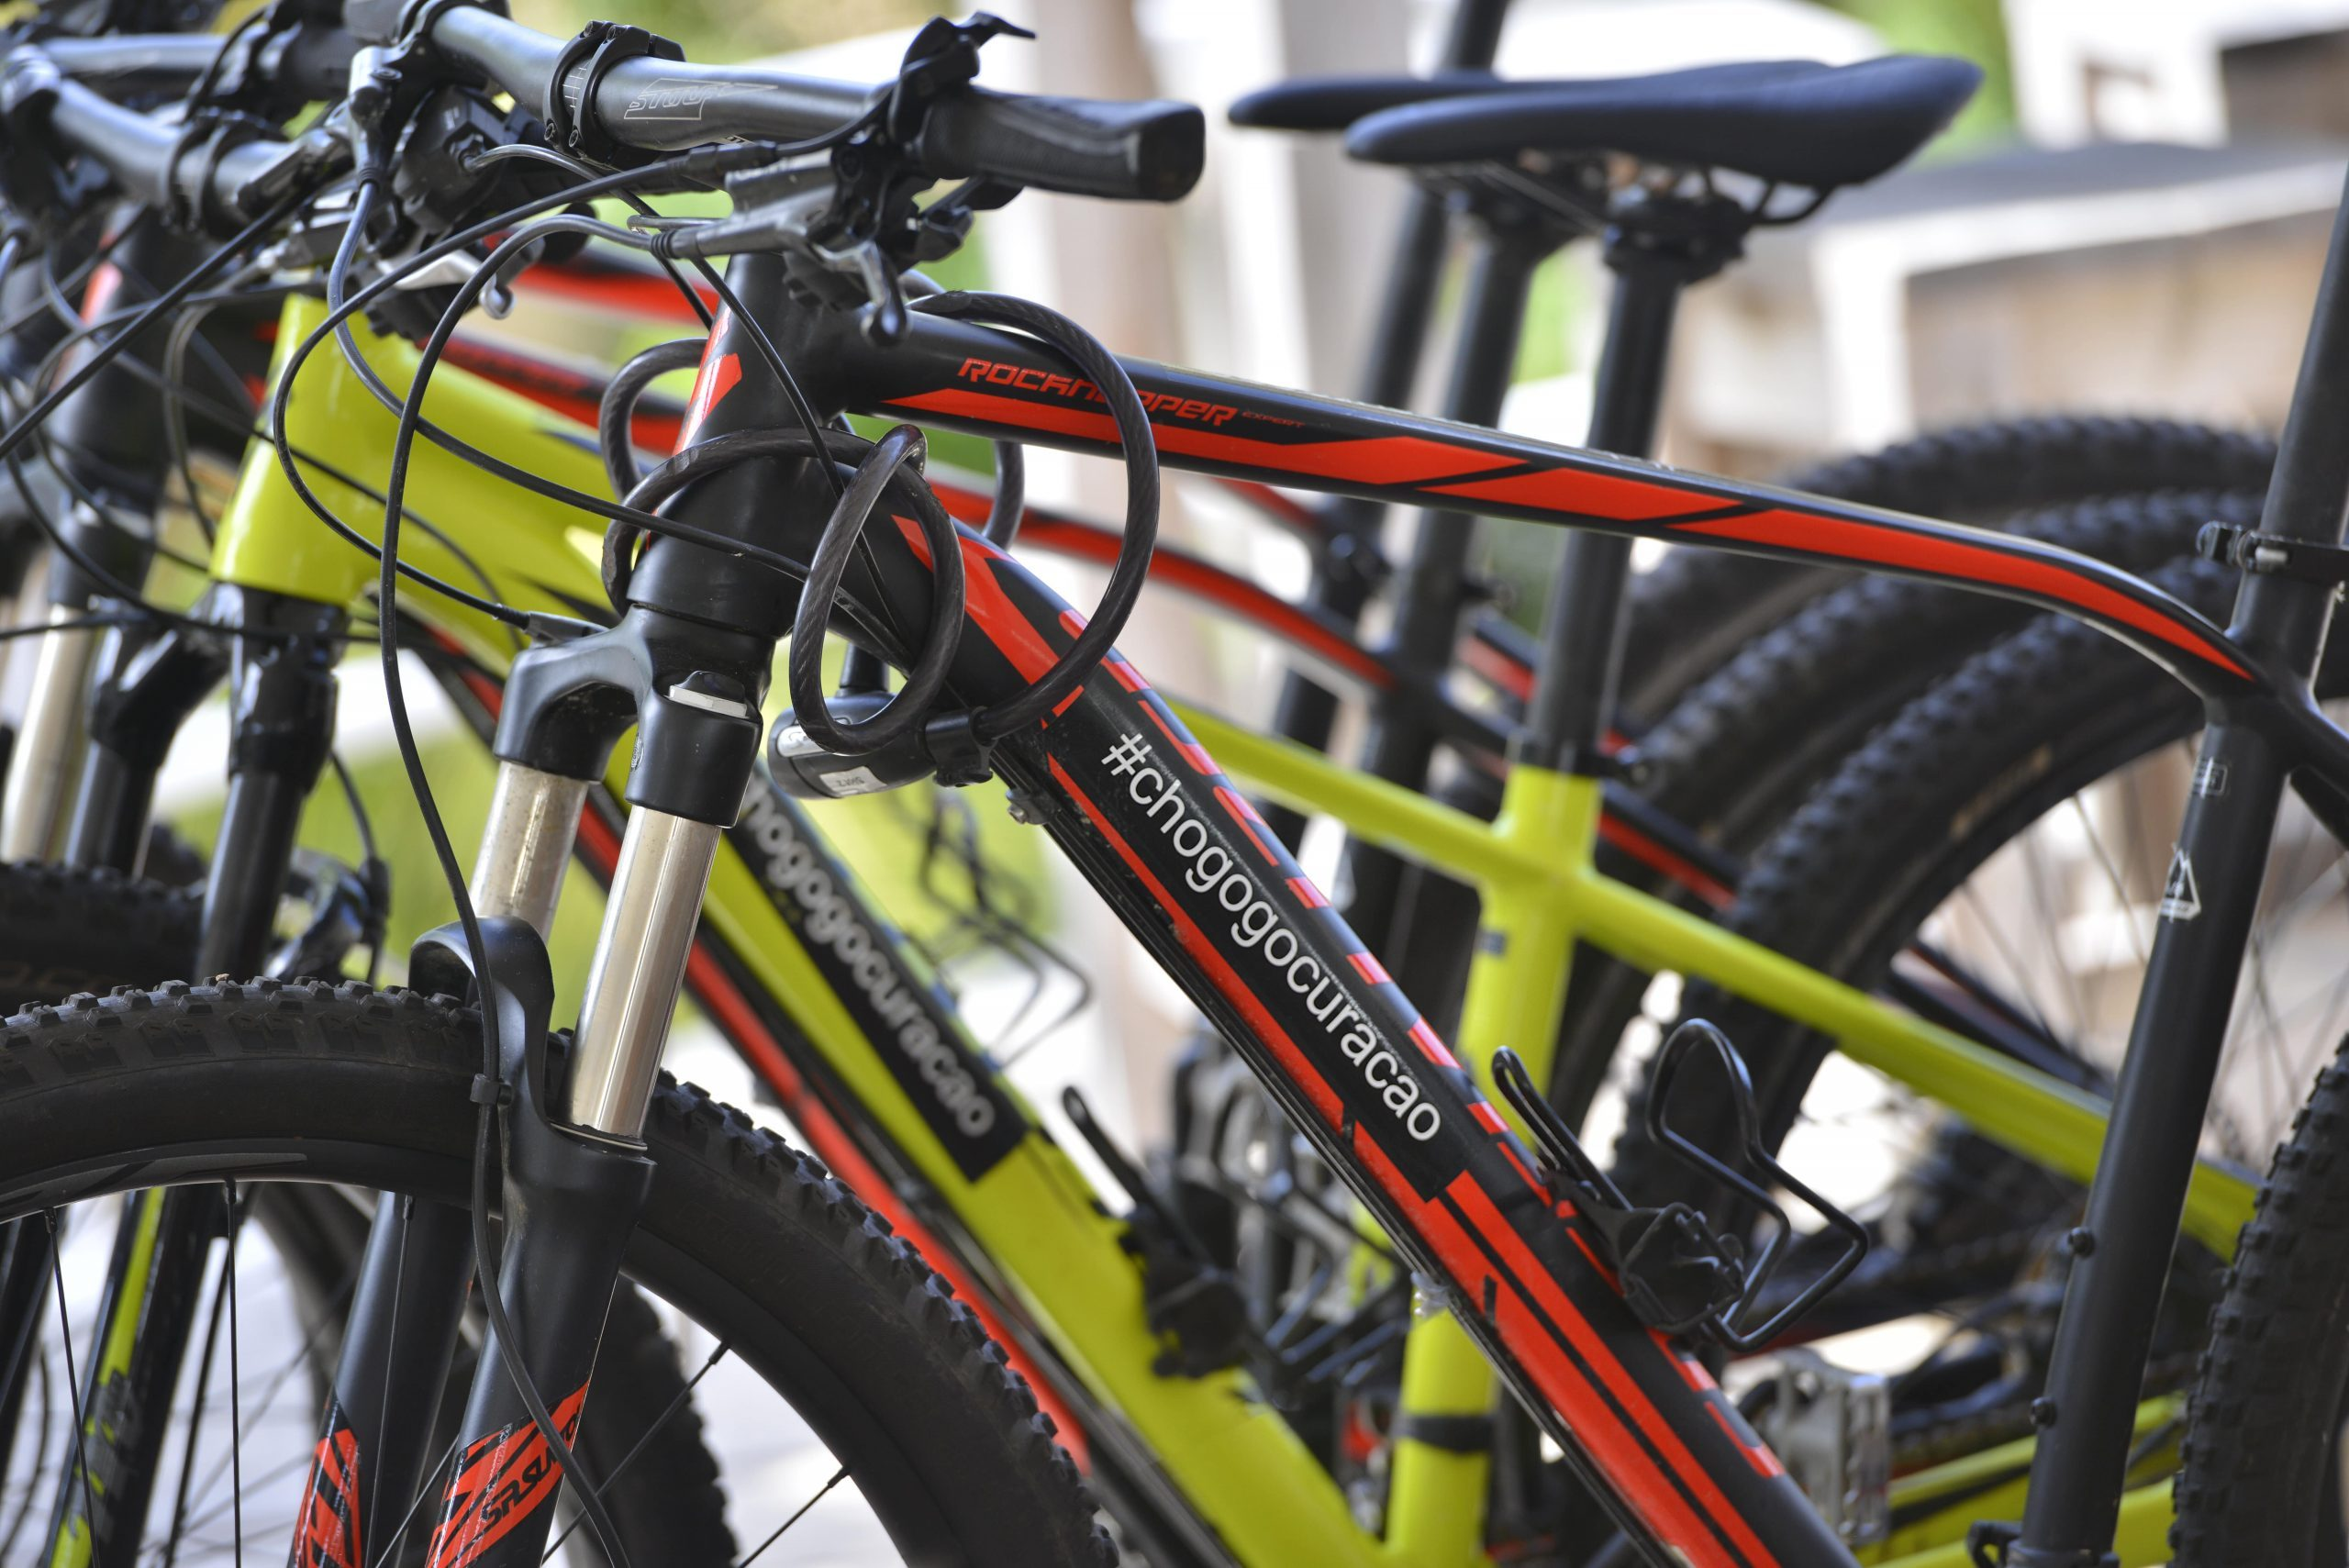 High quality mountain bikes for rent at the Chogogo Curacao bike rental.